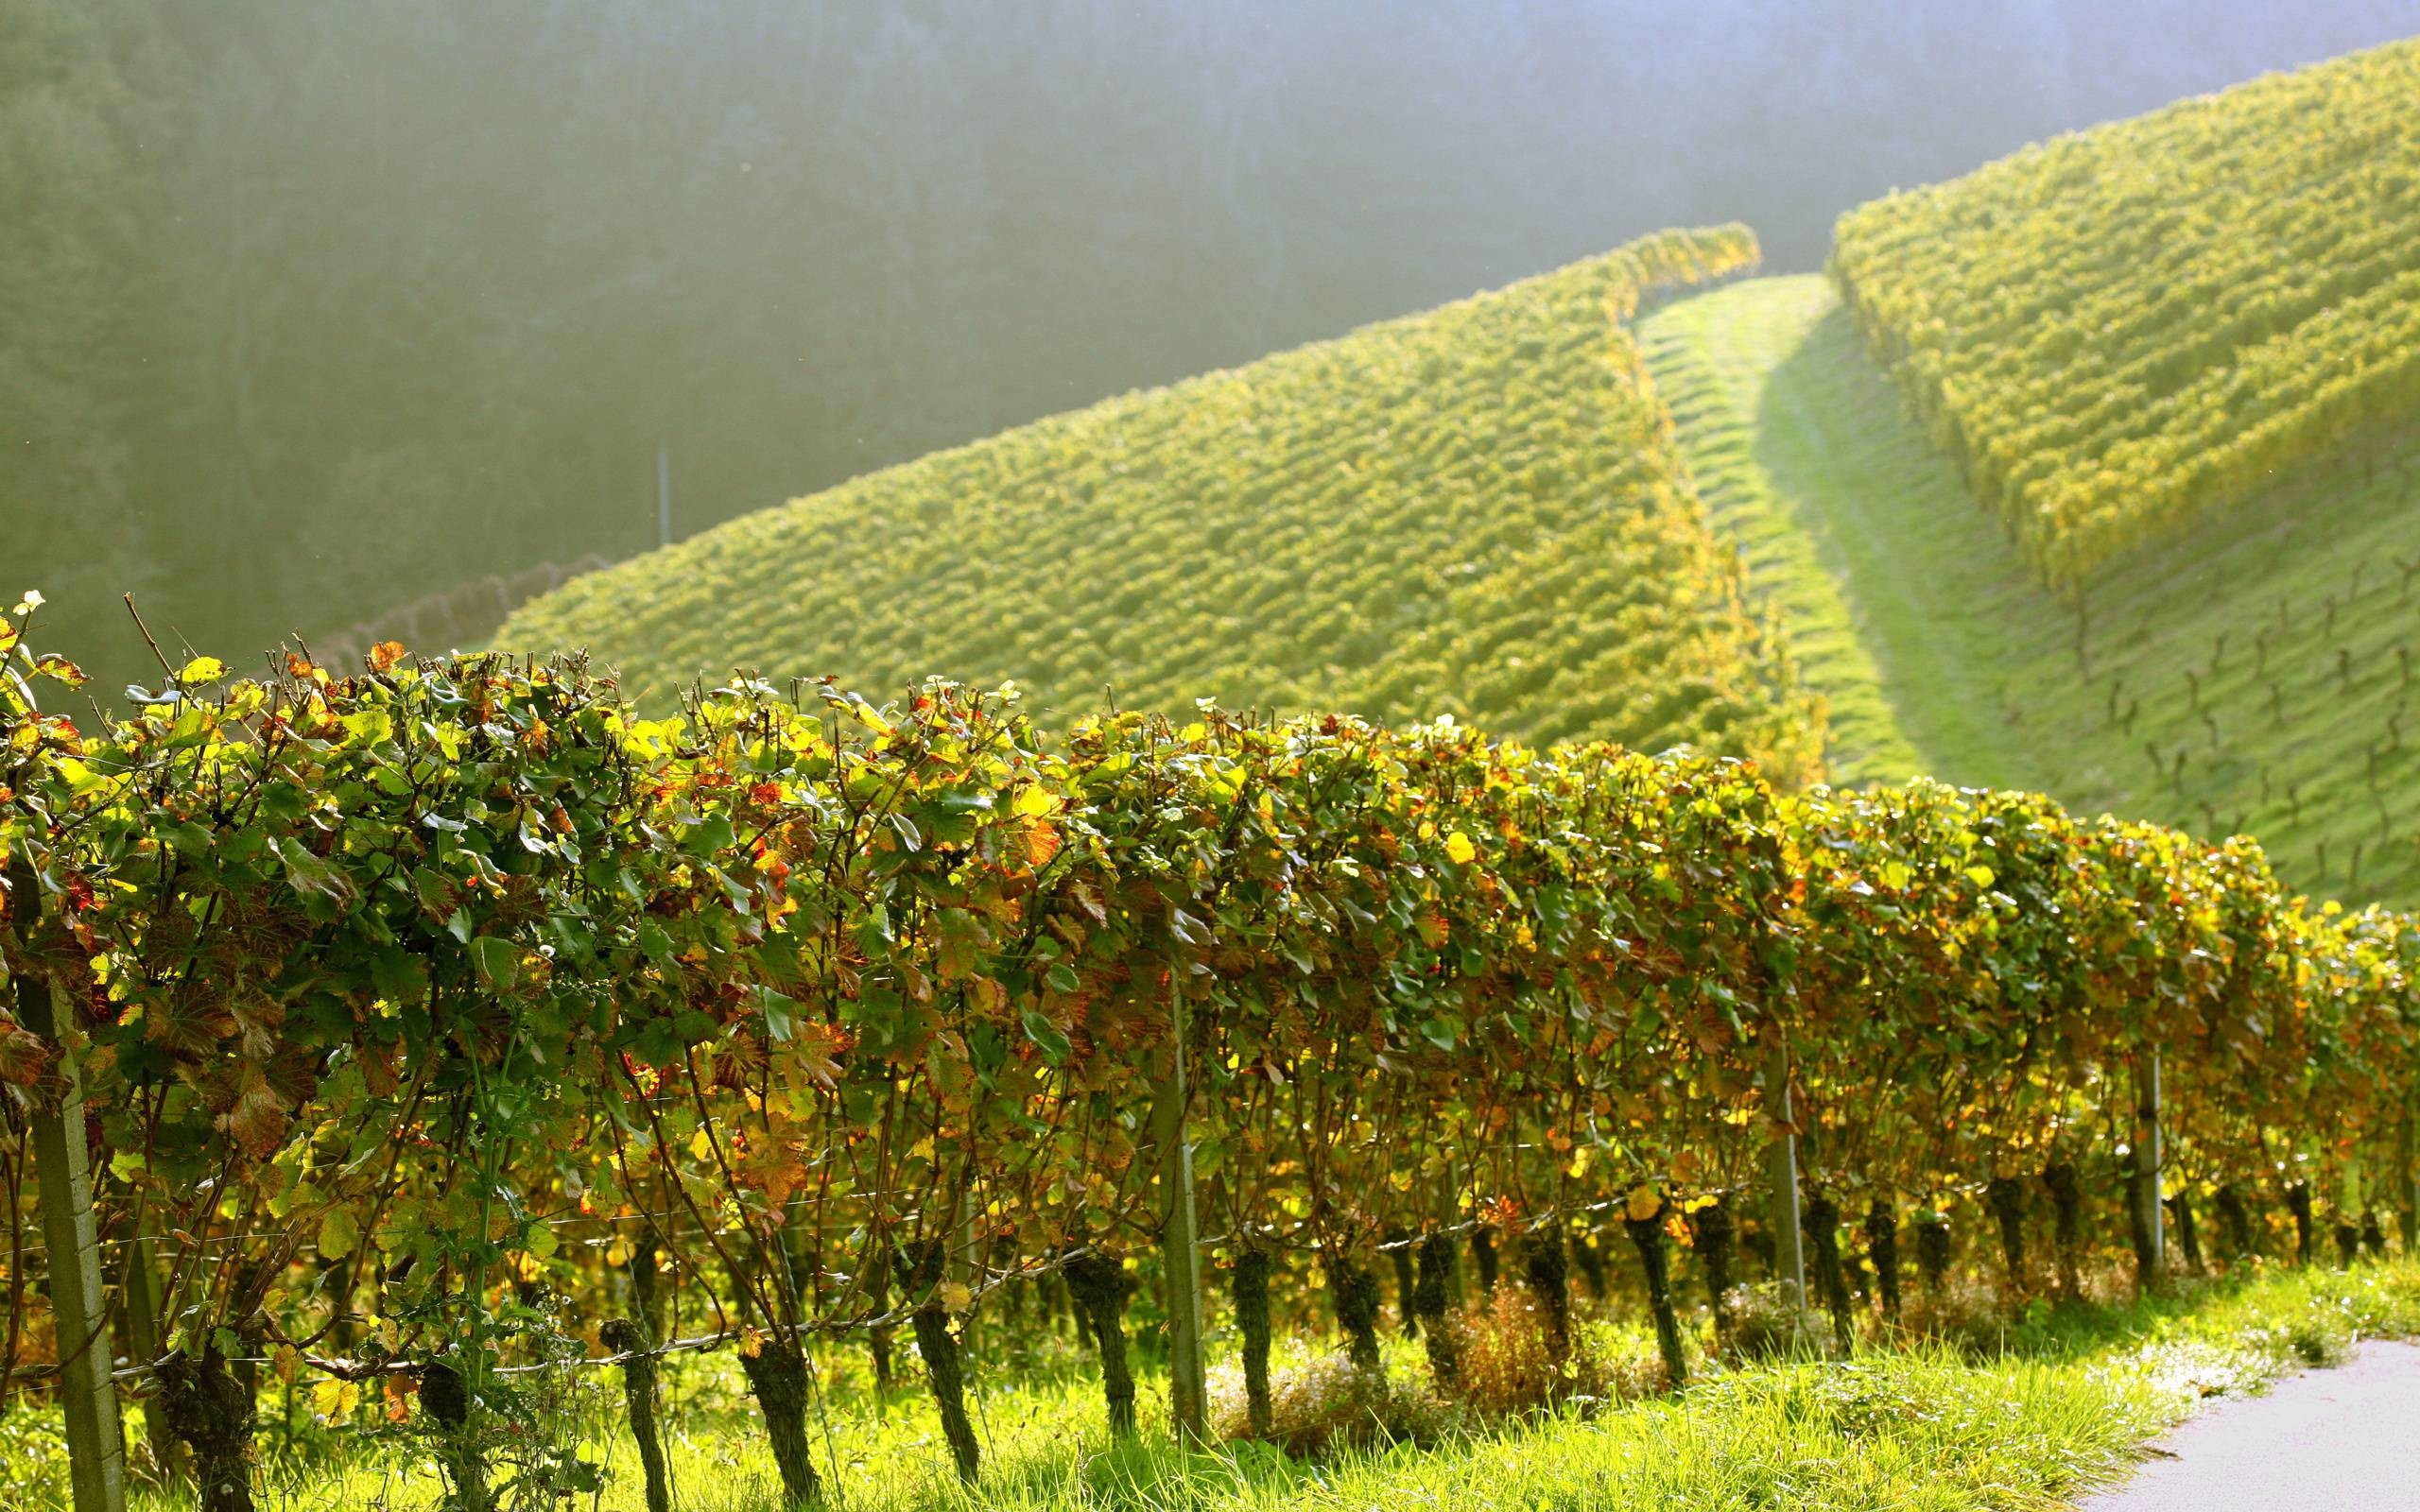 2560x1600 68 Vineyard Wallpapers | Vineyard Backgrounds Page 2